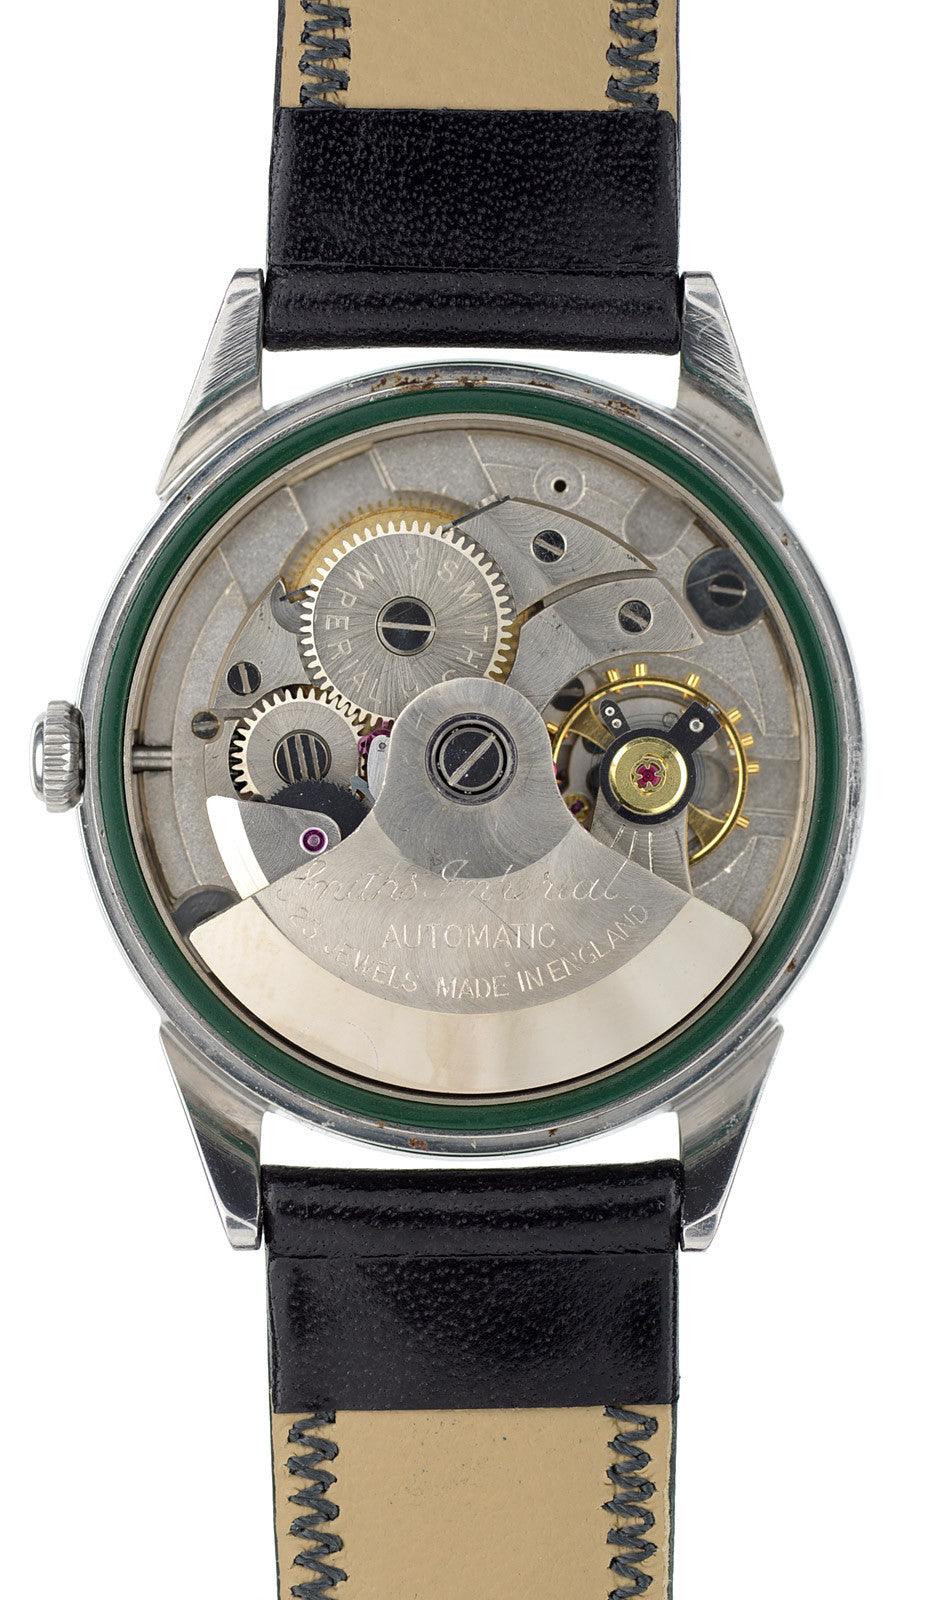 dating smiths watches